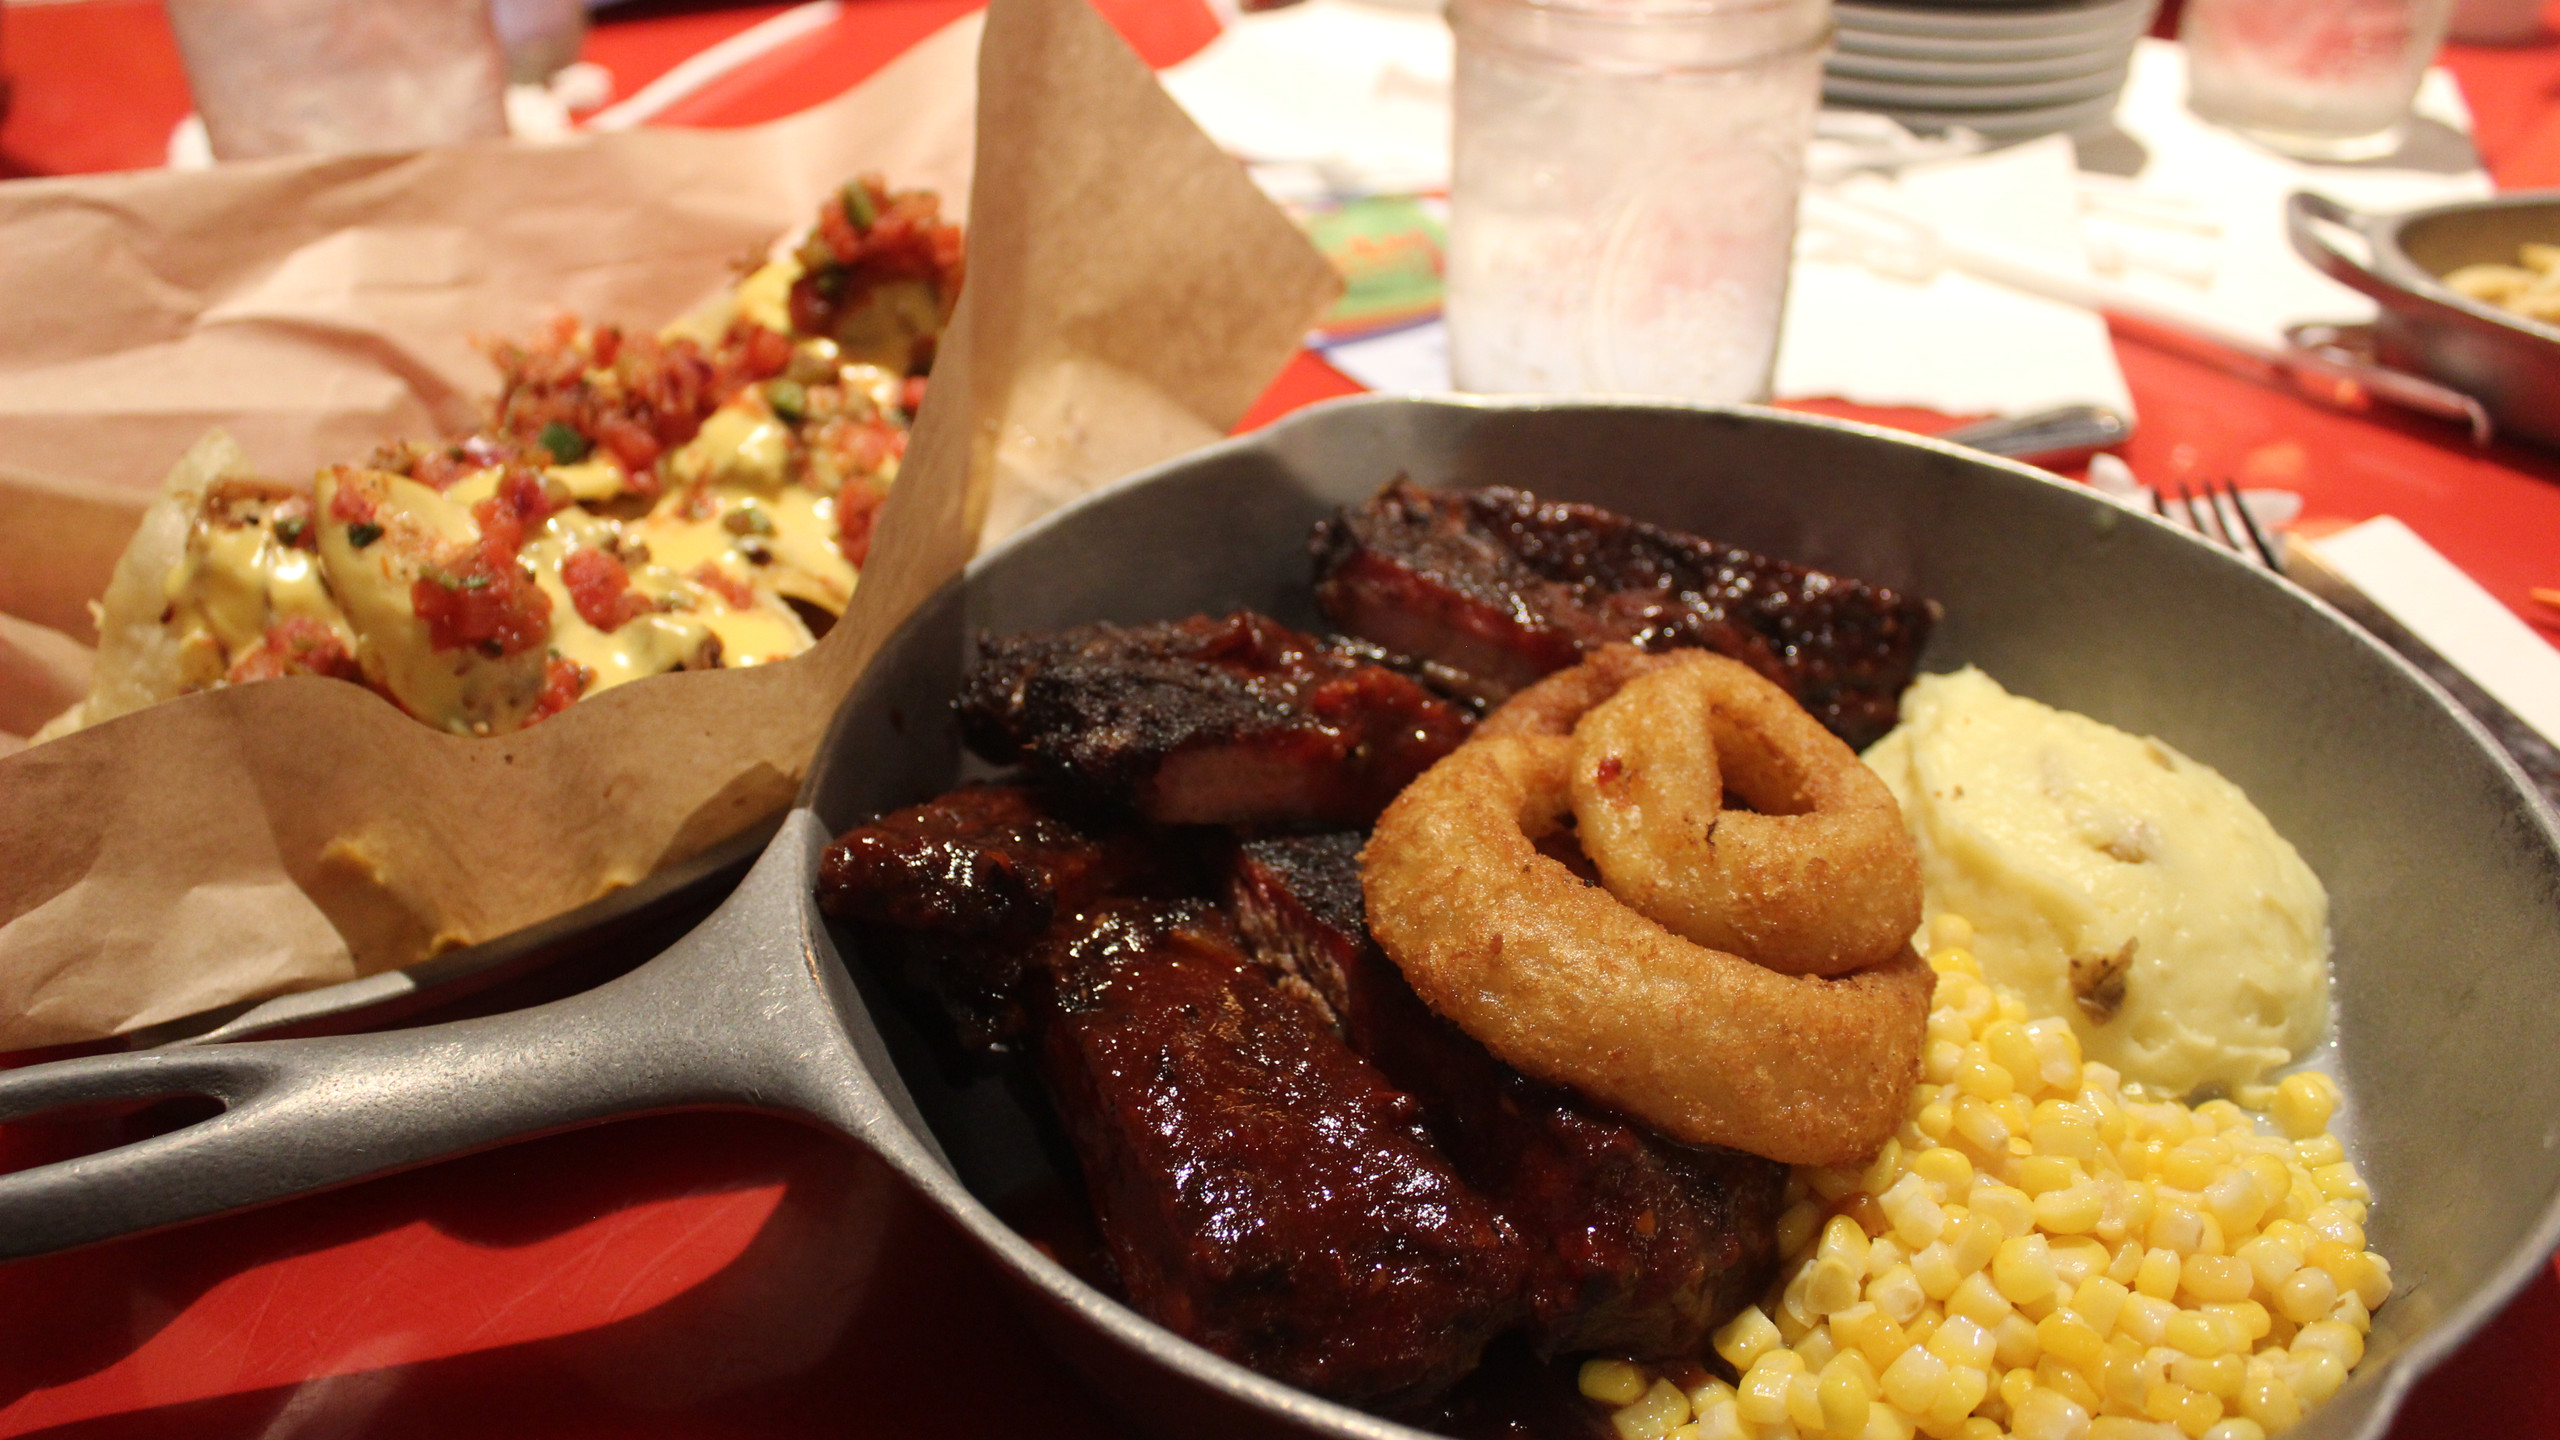 Food at Whispering Canyon Cafe at Disney's Wilderness Lodge